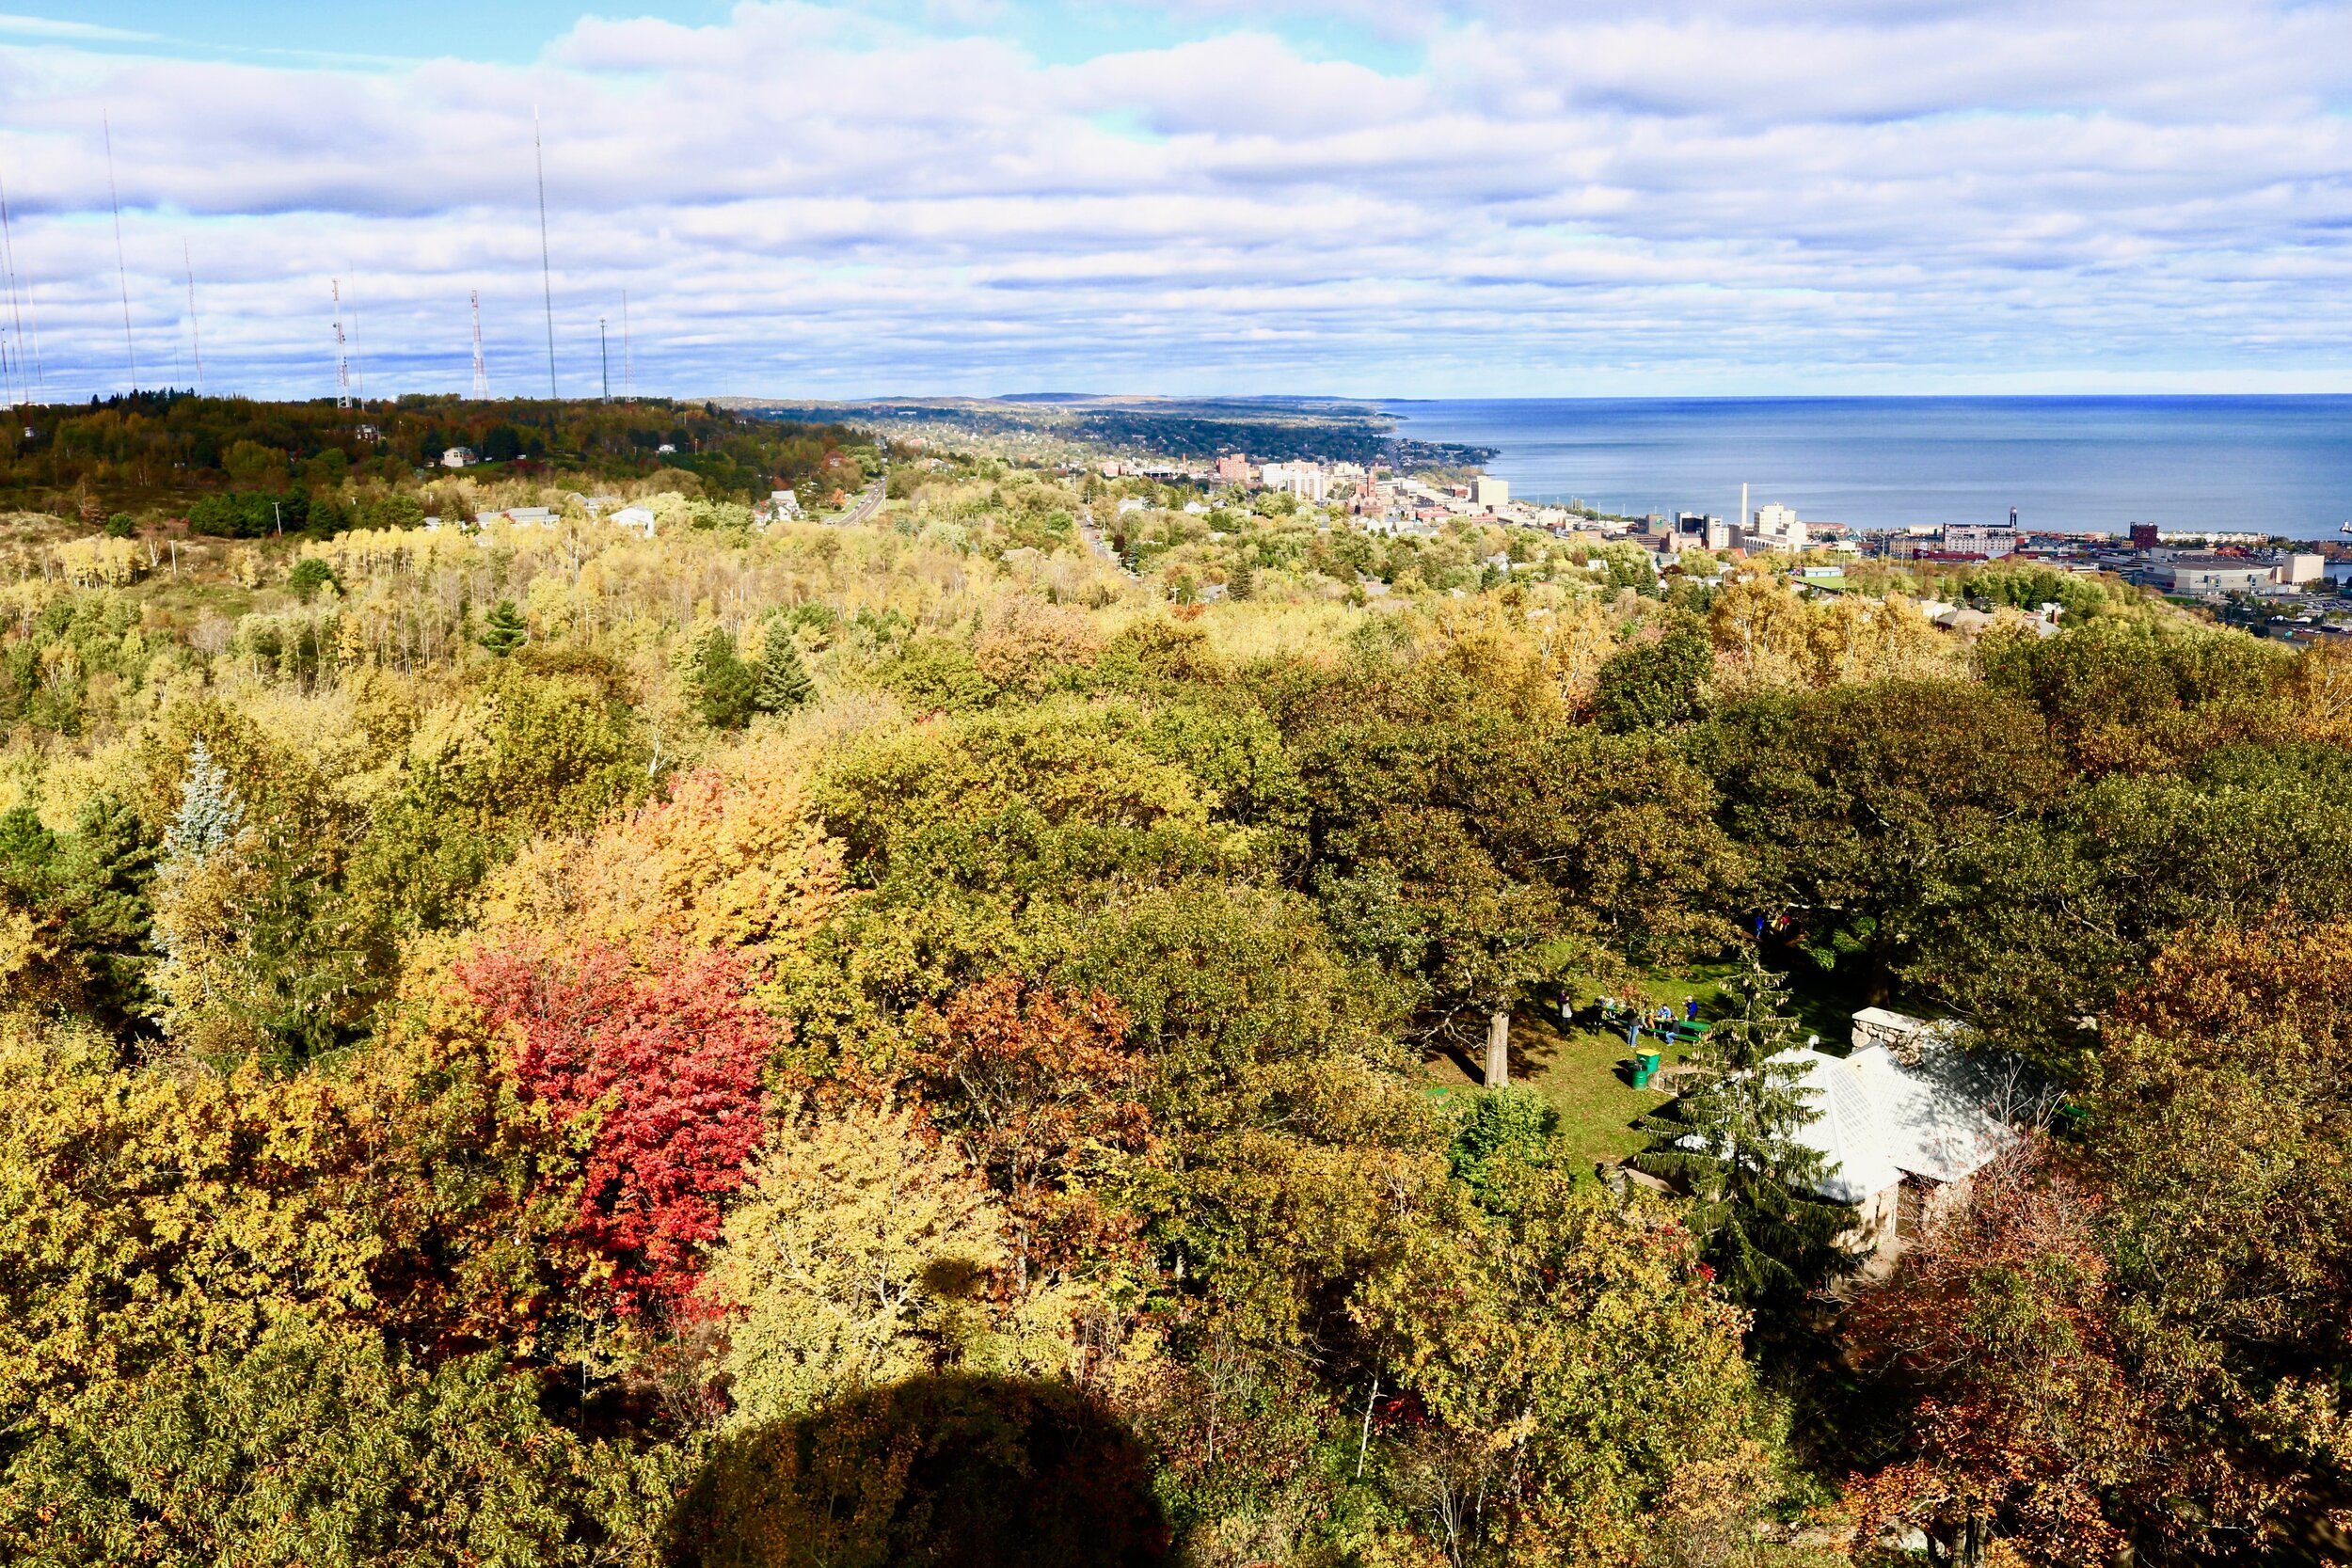 The view from the top of Enger Tower. Photo by Brianna Taggart